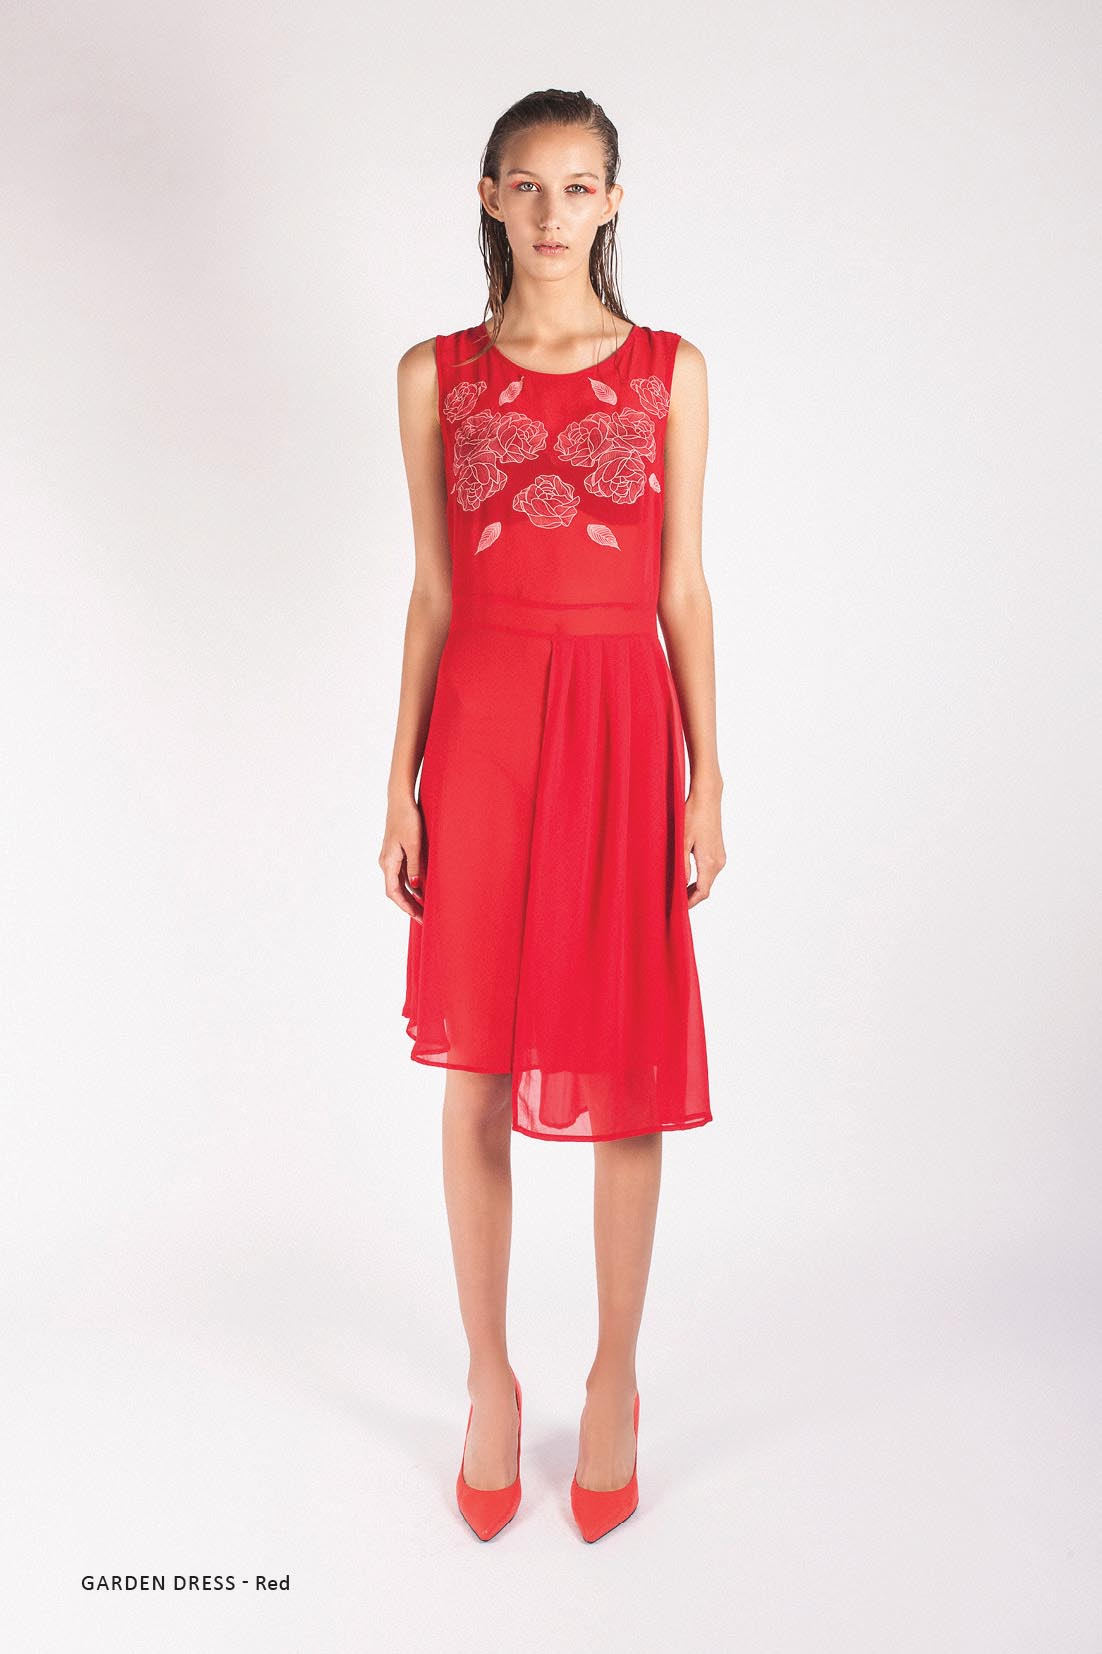 LAST SIZE / Rose Garden Dress Red - Was $290 Now $70